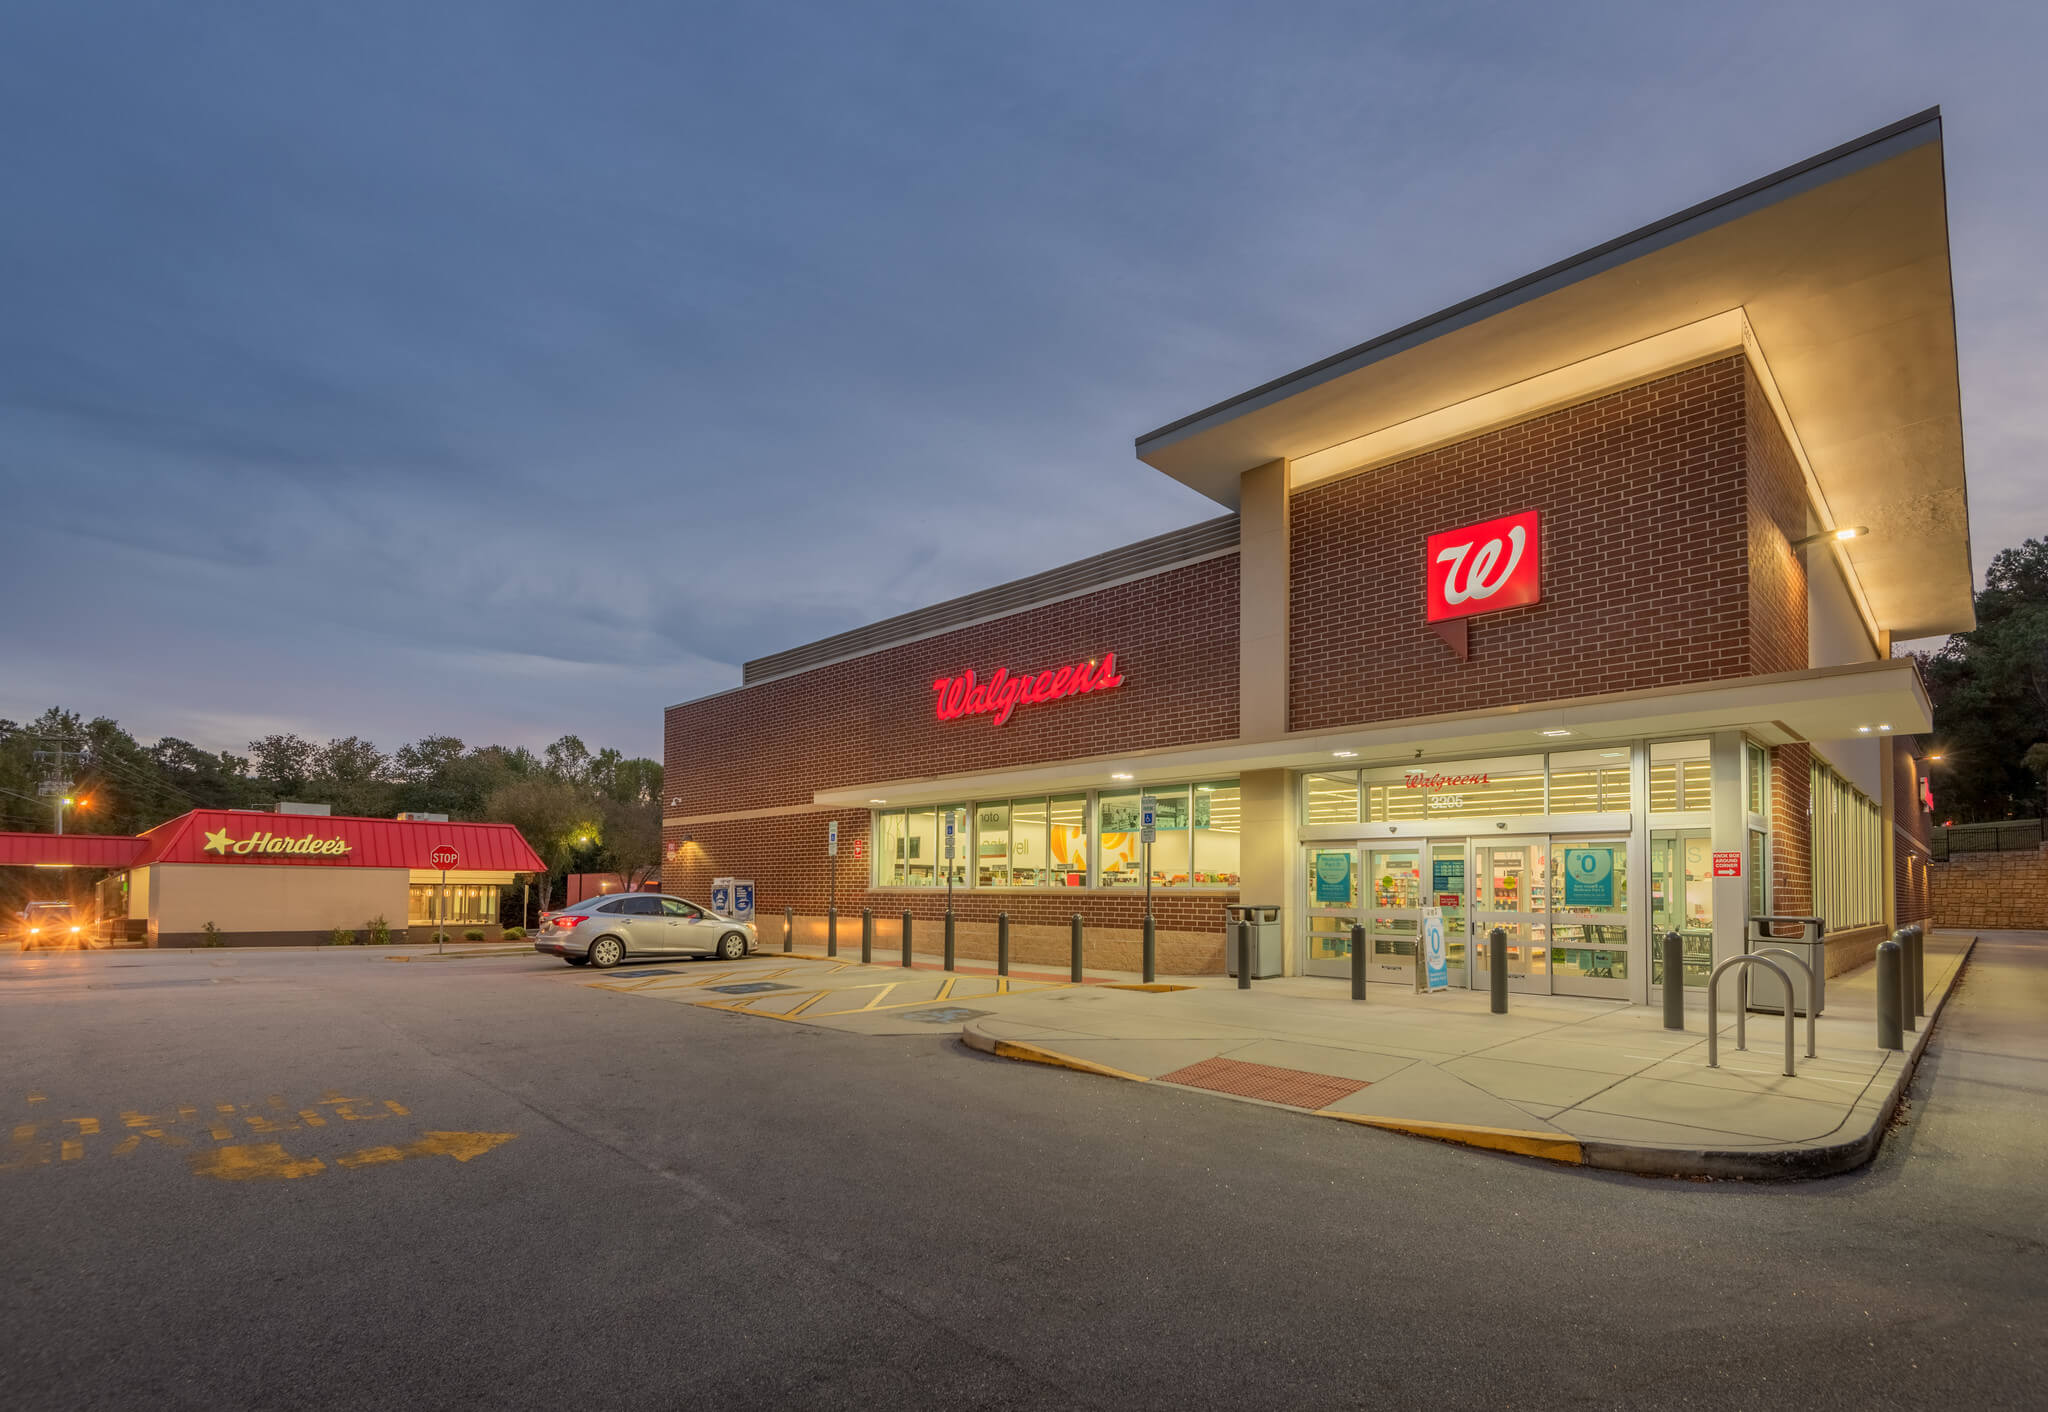 Avent Ferry Walgreens and Hardees